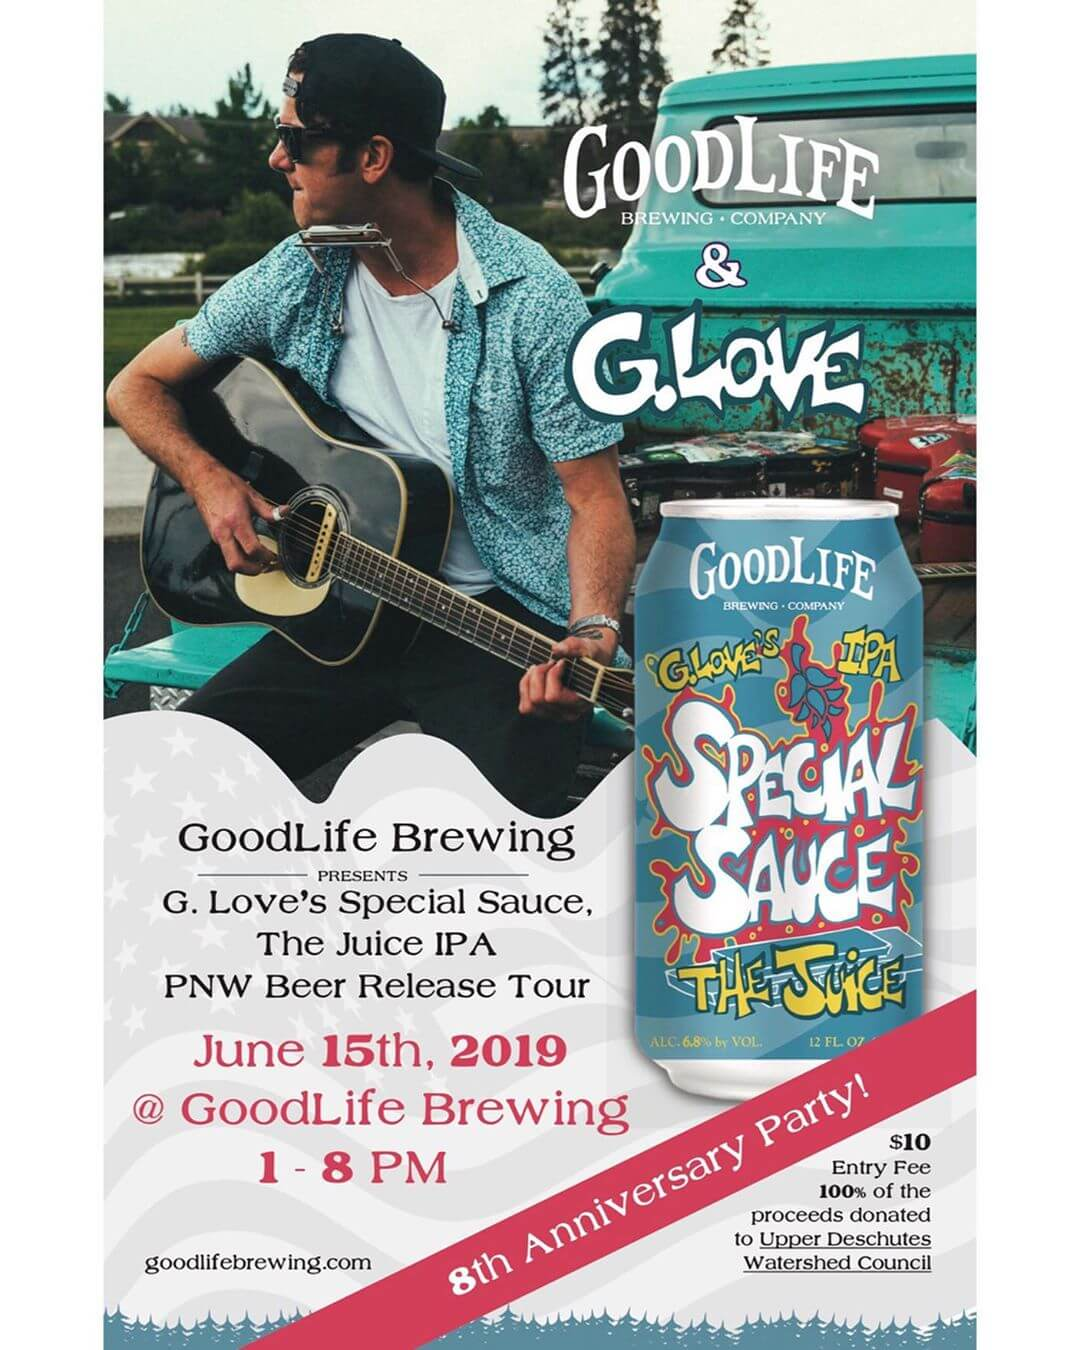 It's been hard to keep this quiet but we are stoked to finally announce the shows for this years GoodLife Brewing presents @phillyglove's Special Sauce- The Juice IPA PNW Beer Release Tour!  G. Love will be playing at our 8th Anniversary Party on Saturday, June 15th from 3pm-5pm. Tickets will be sold the day of in the biergarten and are $10, which includes a free beverage. All ticket proceeds are being donated to the Upper Deschutes Watershed Council to help their fight of keeping our waters clean. There is limited space for this show so we recommend getting here early to get your ticket!  Tuesday, June 18th G. Love will be jamming out @biersteineugene and we can't wait to drink some Juice with Eugene, OR! Last years show at the Stein was unreal so you won't want to miss it!  Wednesday, June 19th we'll be in Tacoma, WA where G. Love will be playing @almamatertacoma from 7pm-9pm. This venue is incredible and we can't wait to live the GoodLife and party down will y'all!